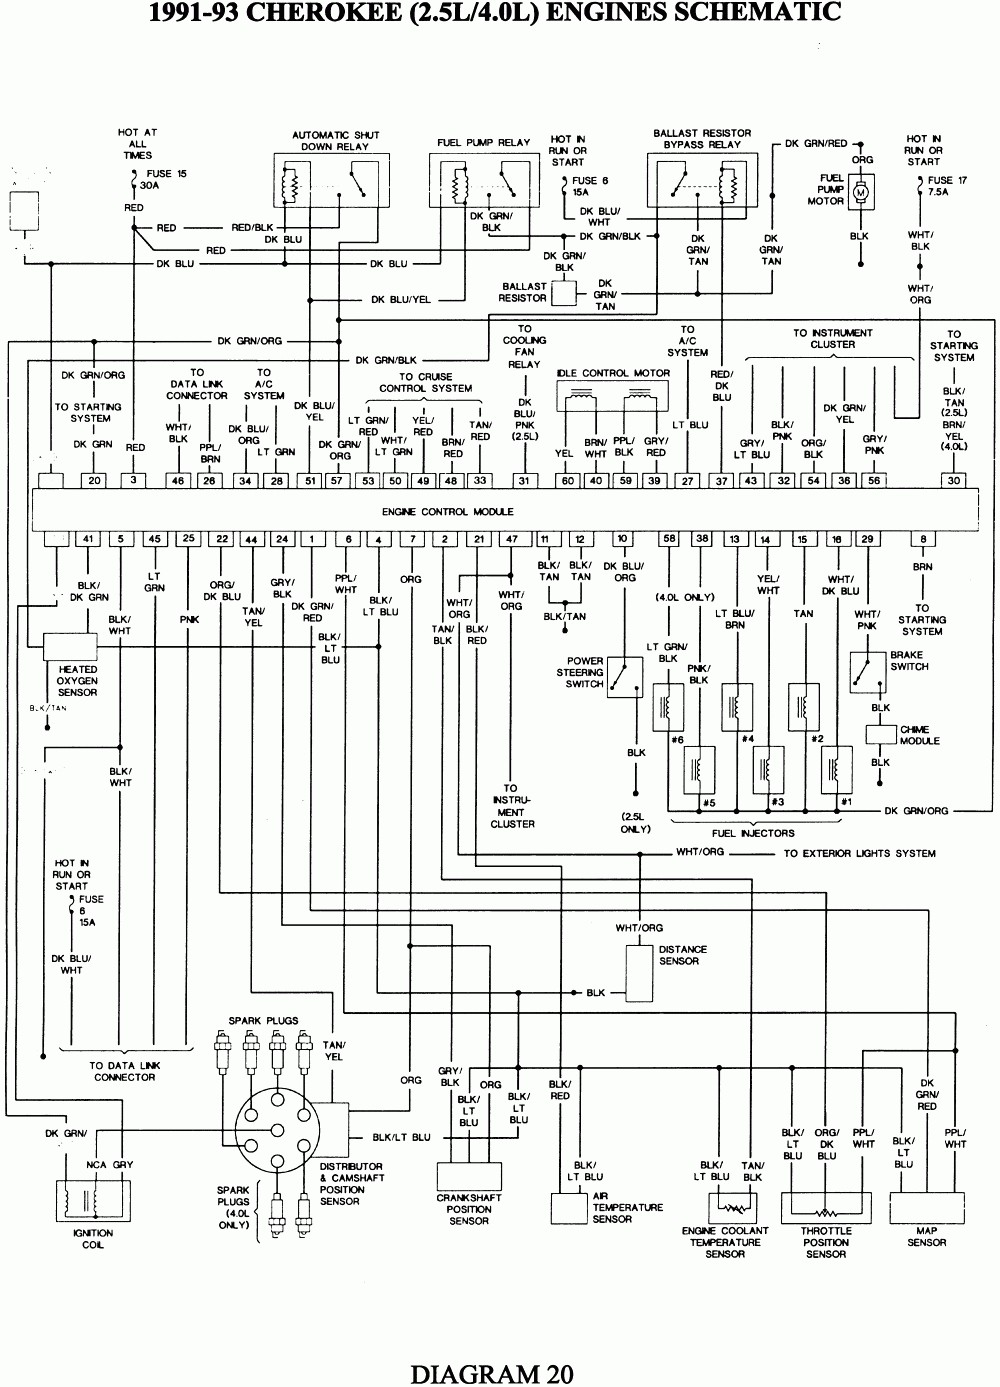 98 Jeep Cherokee Engine Diagram Wiring Diagrams Konsult 1997 Grand Cherokee Engine Diagrams